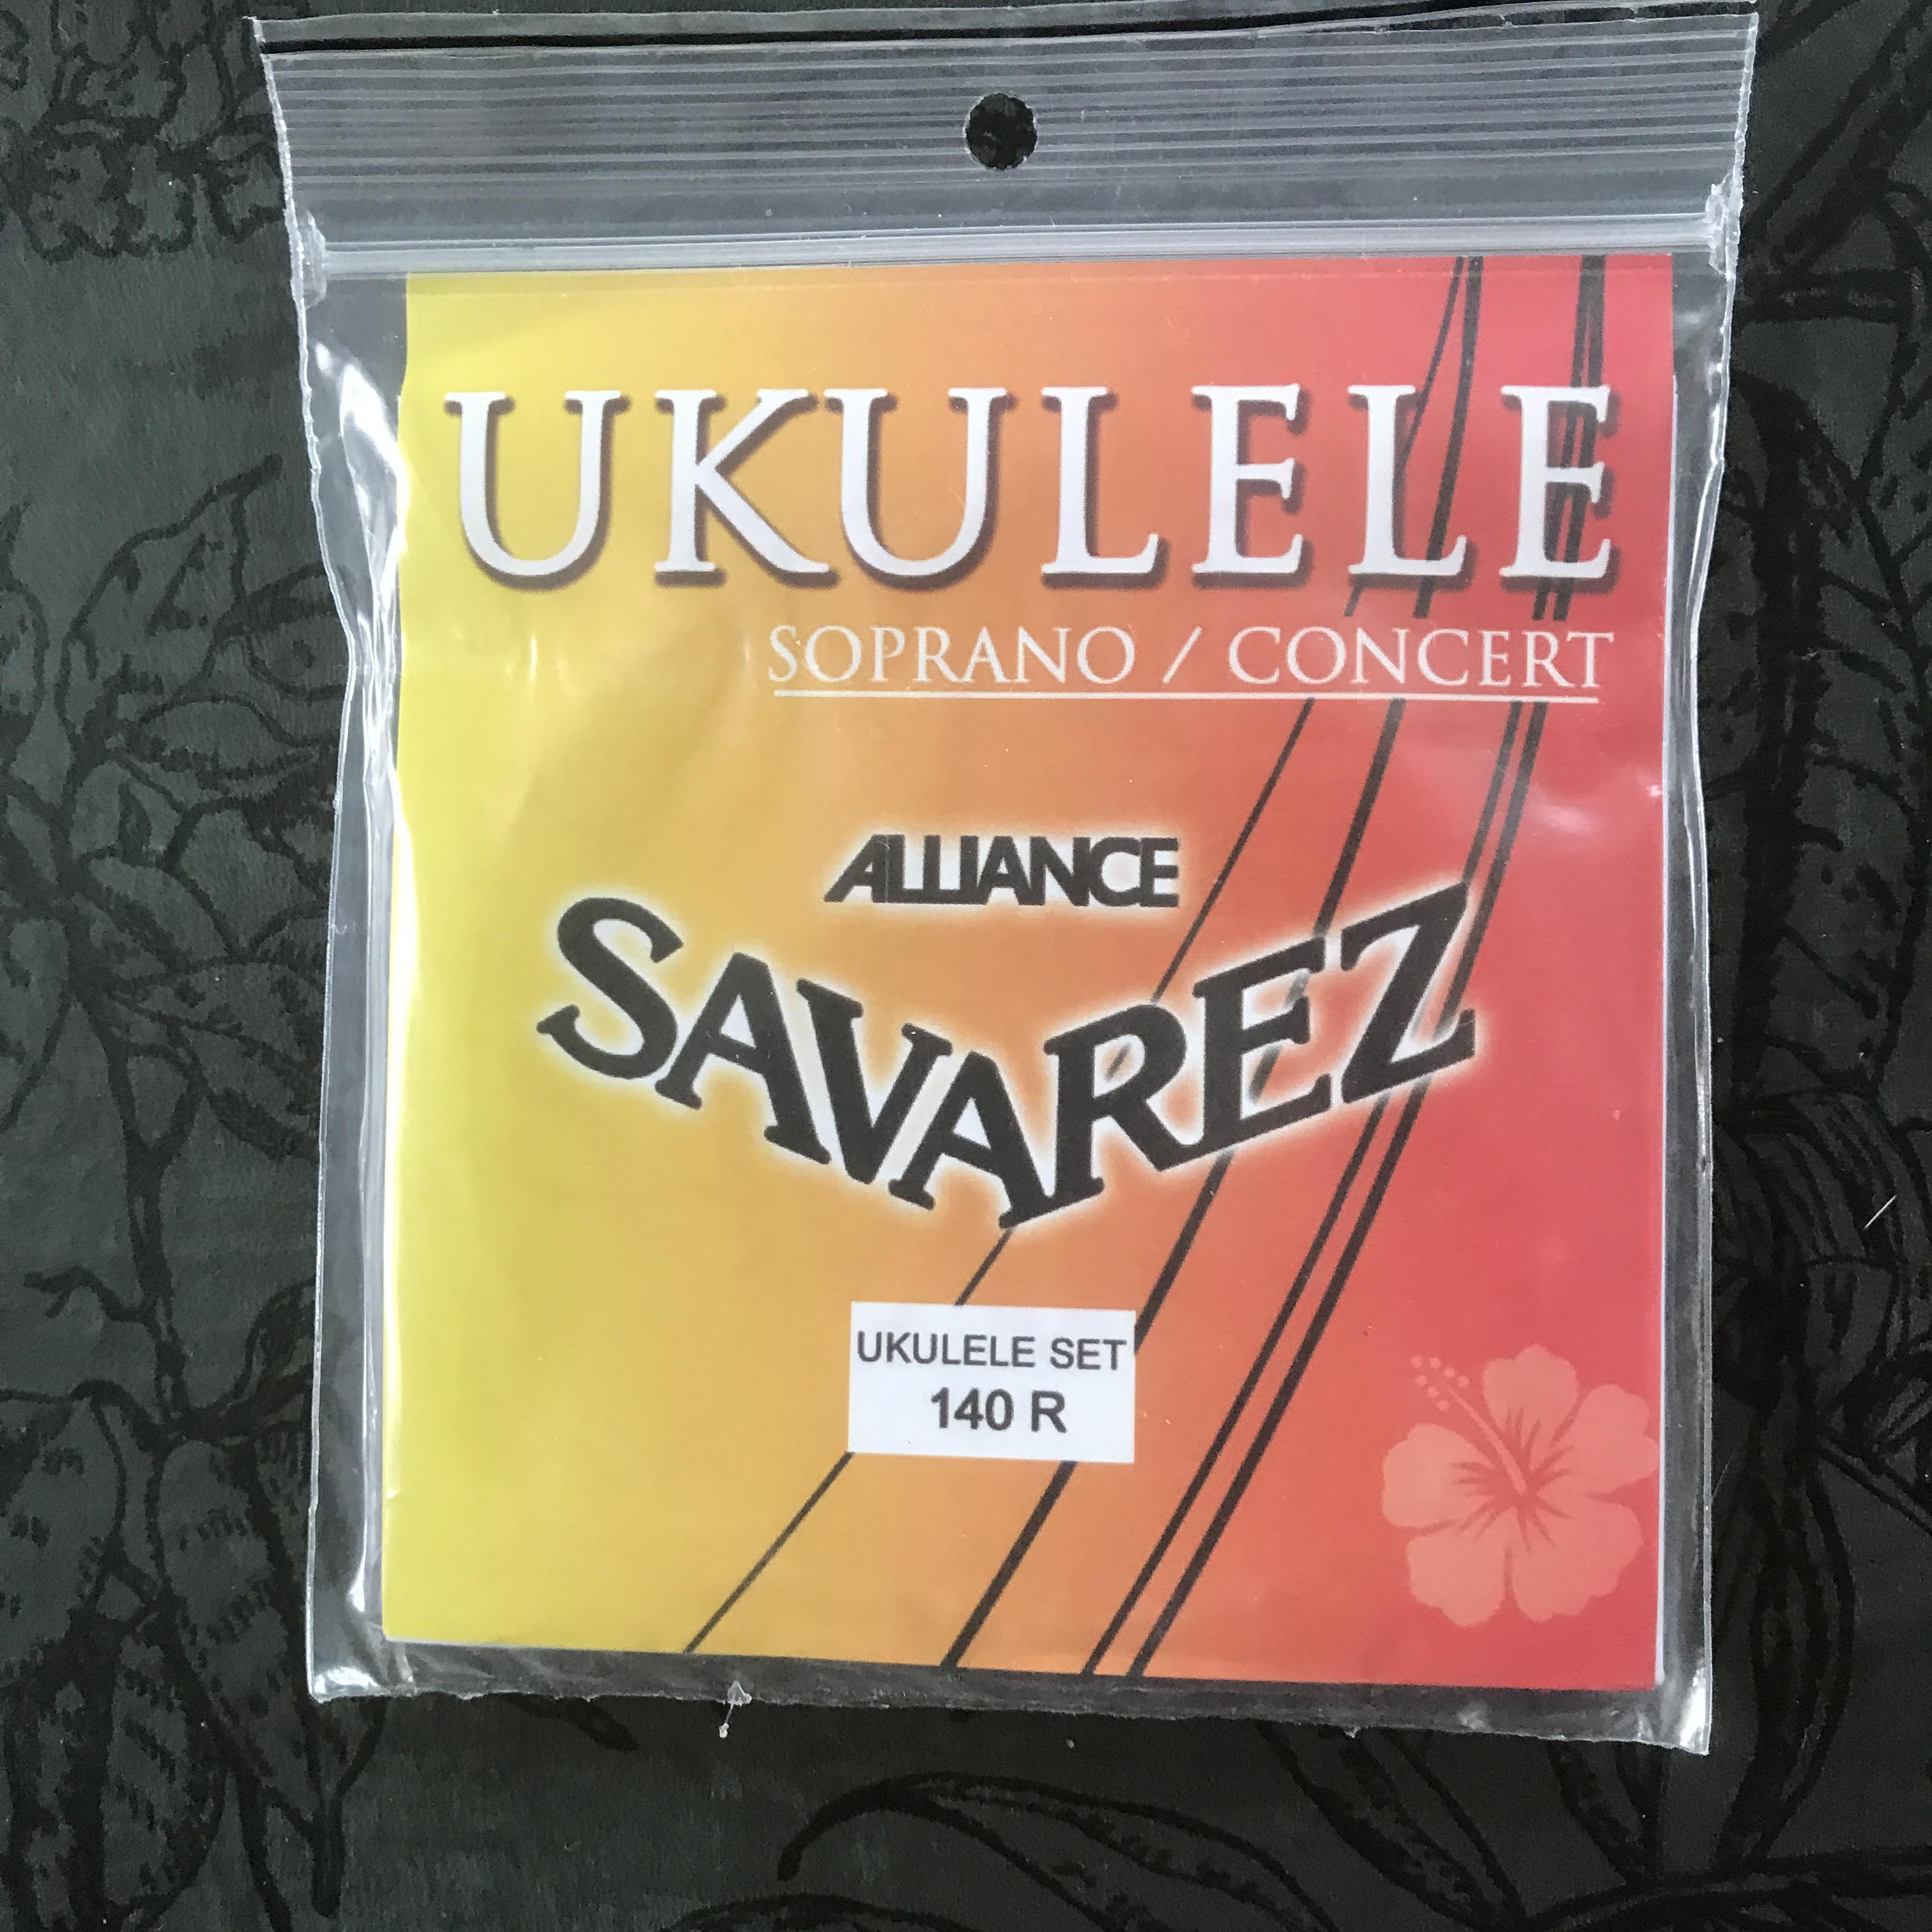 Savarez alliance - sopraan / concert